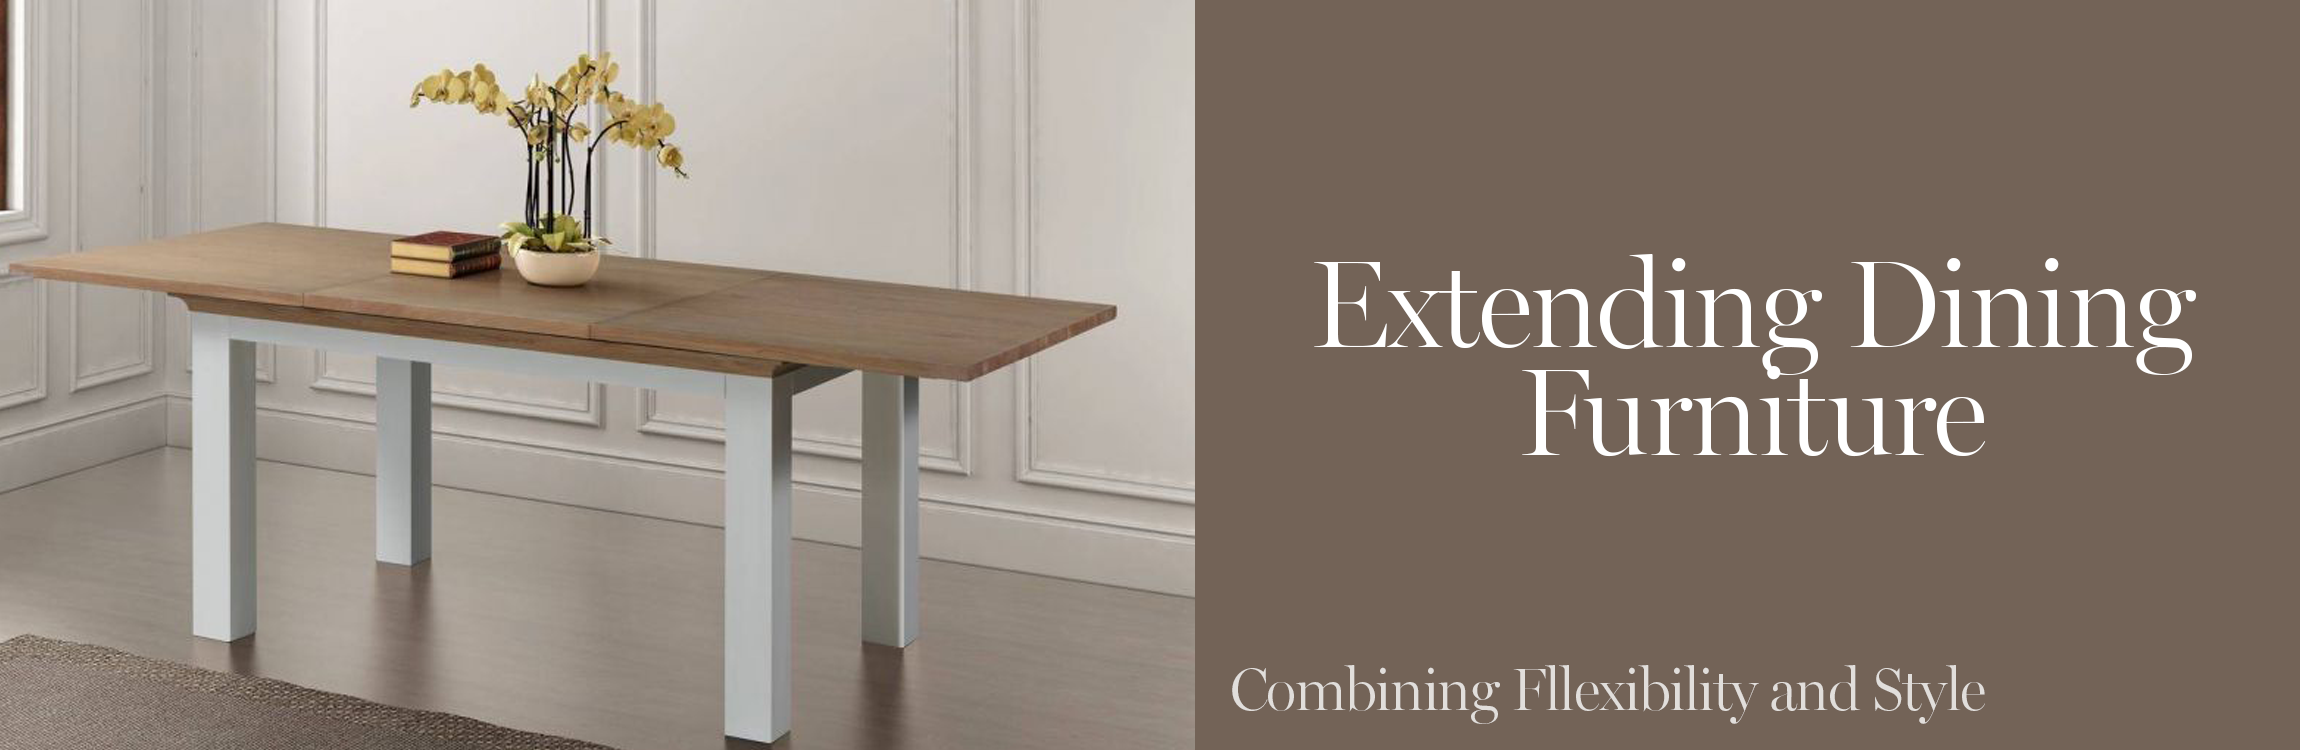 Extending Dining Furniture